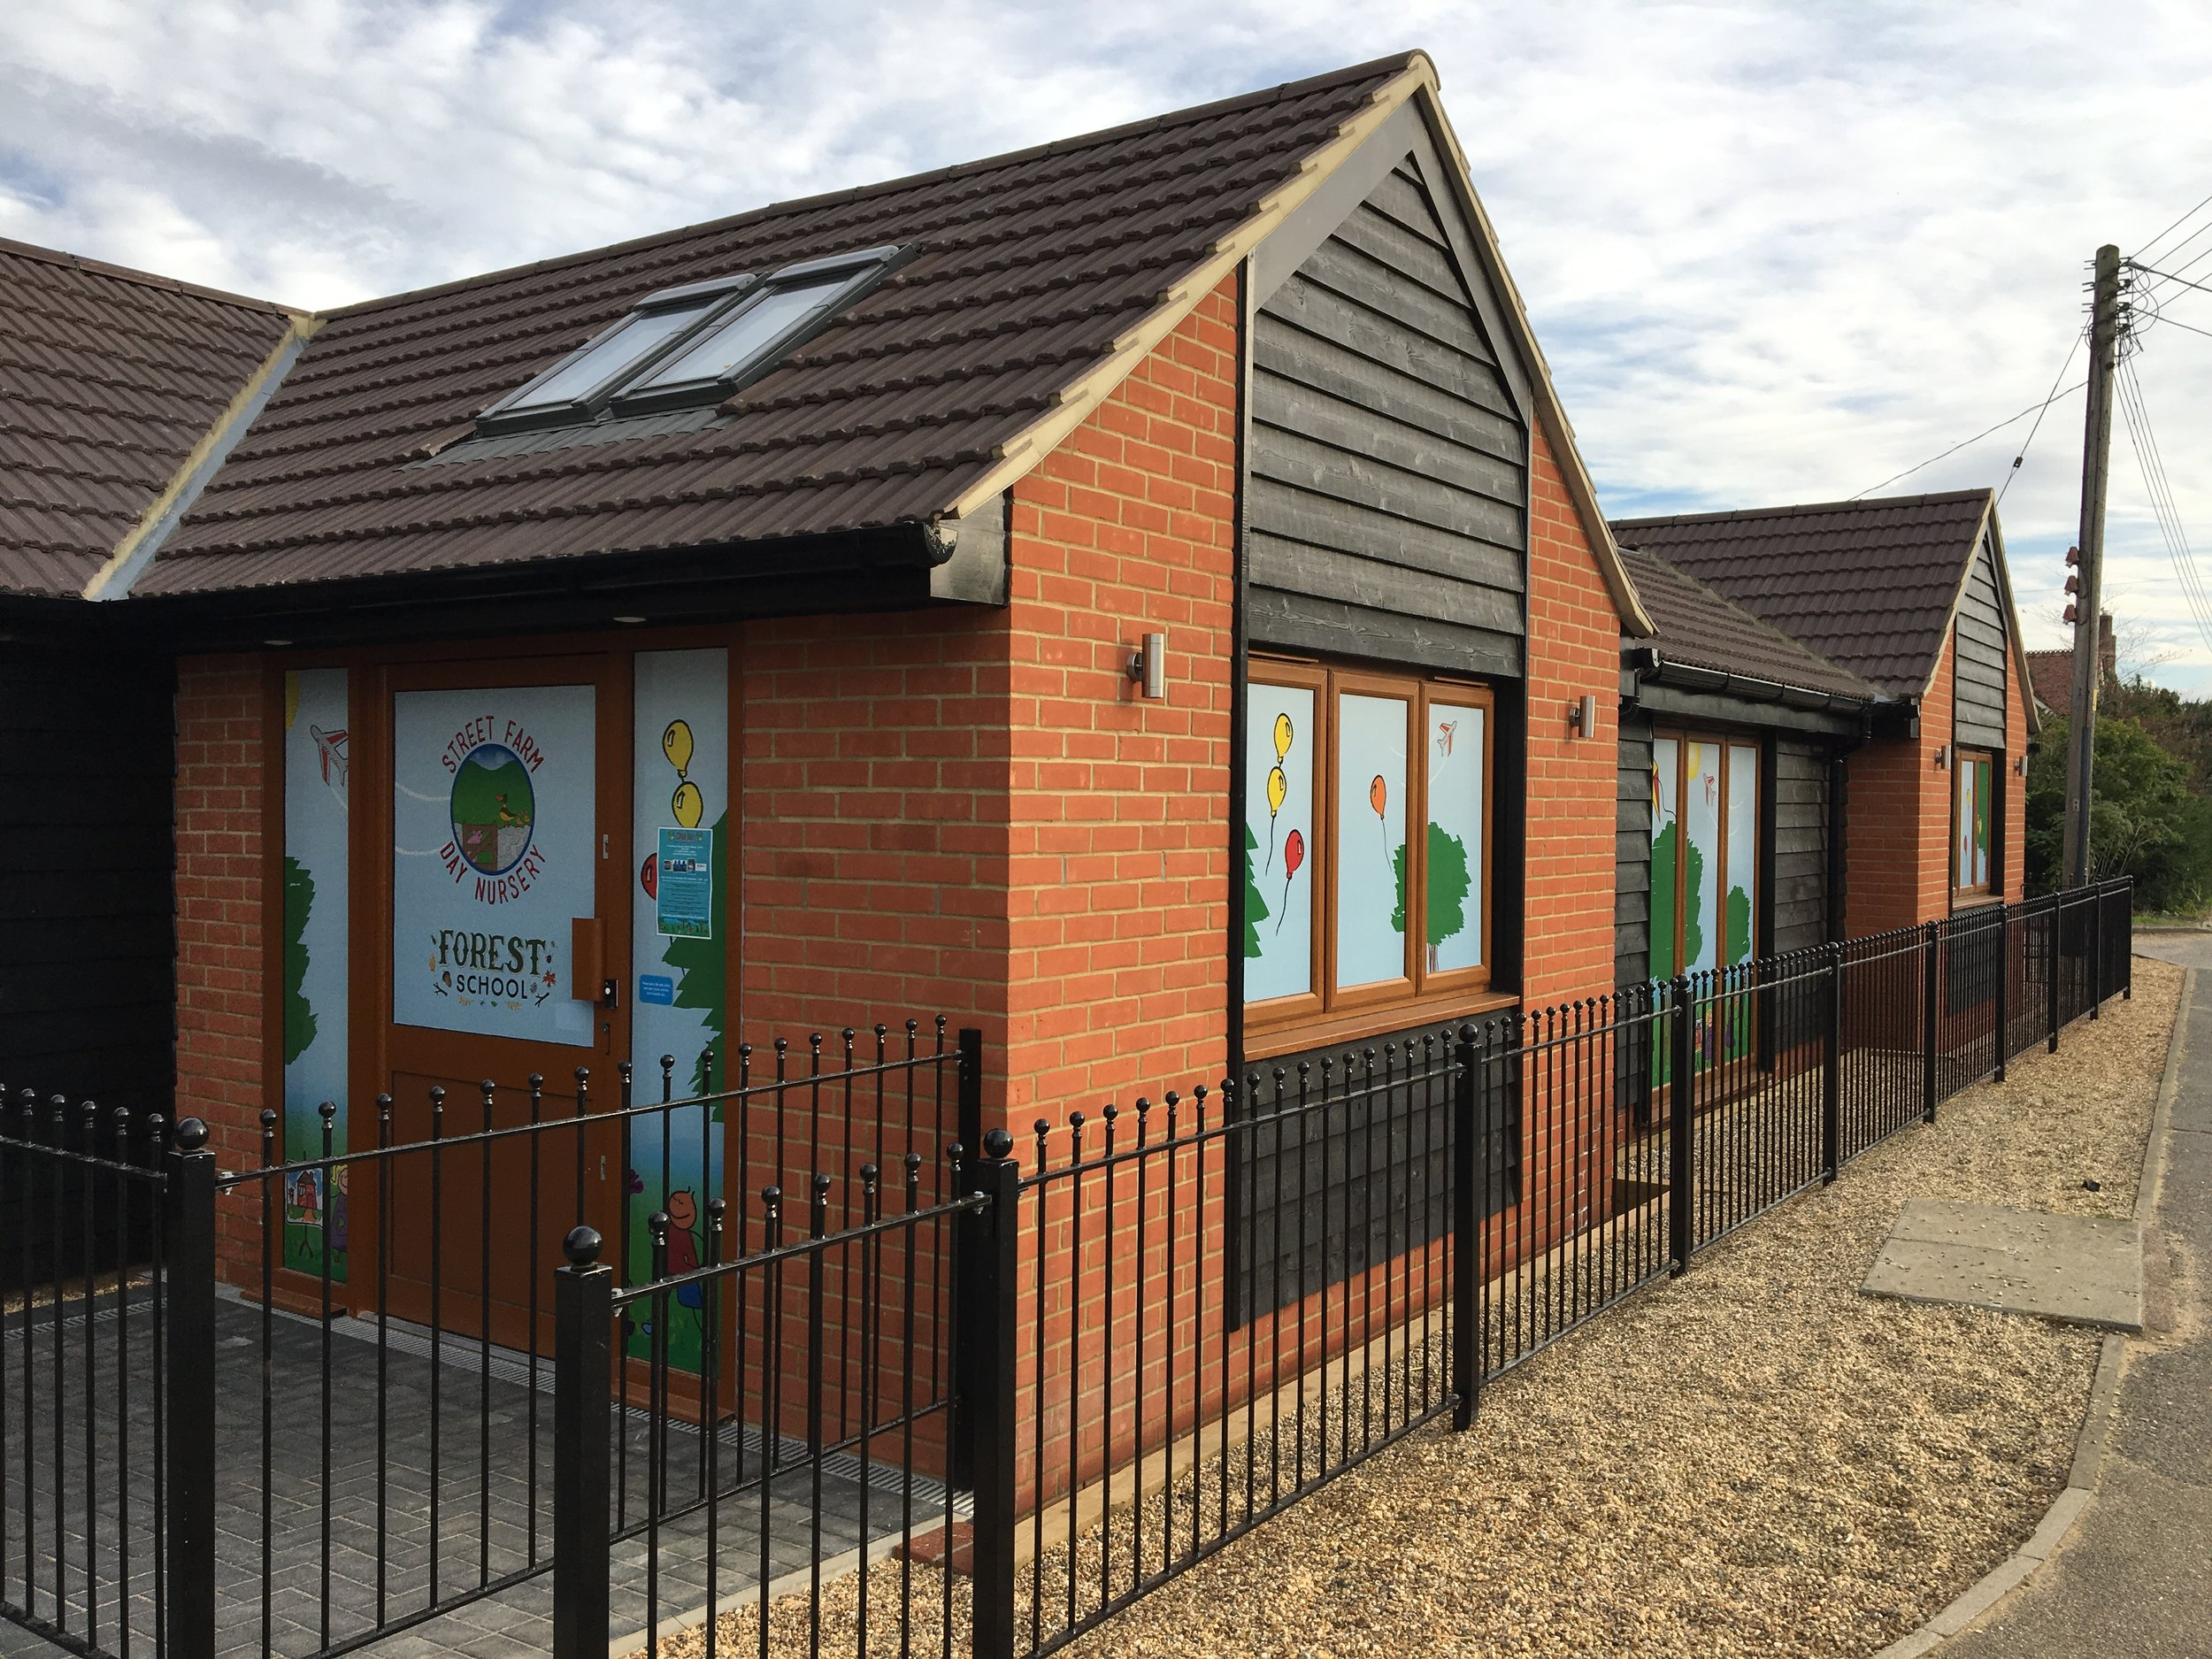 Address:  Station Road, Elmswell, Suffolk   Client:  Street Farm Day Nursery   Main Contractor : Maple Building Services